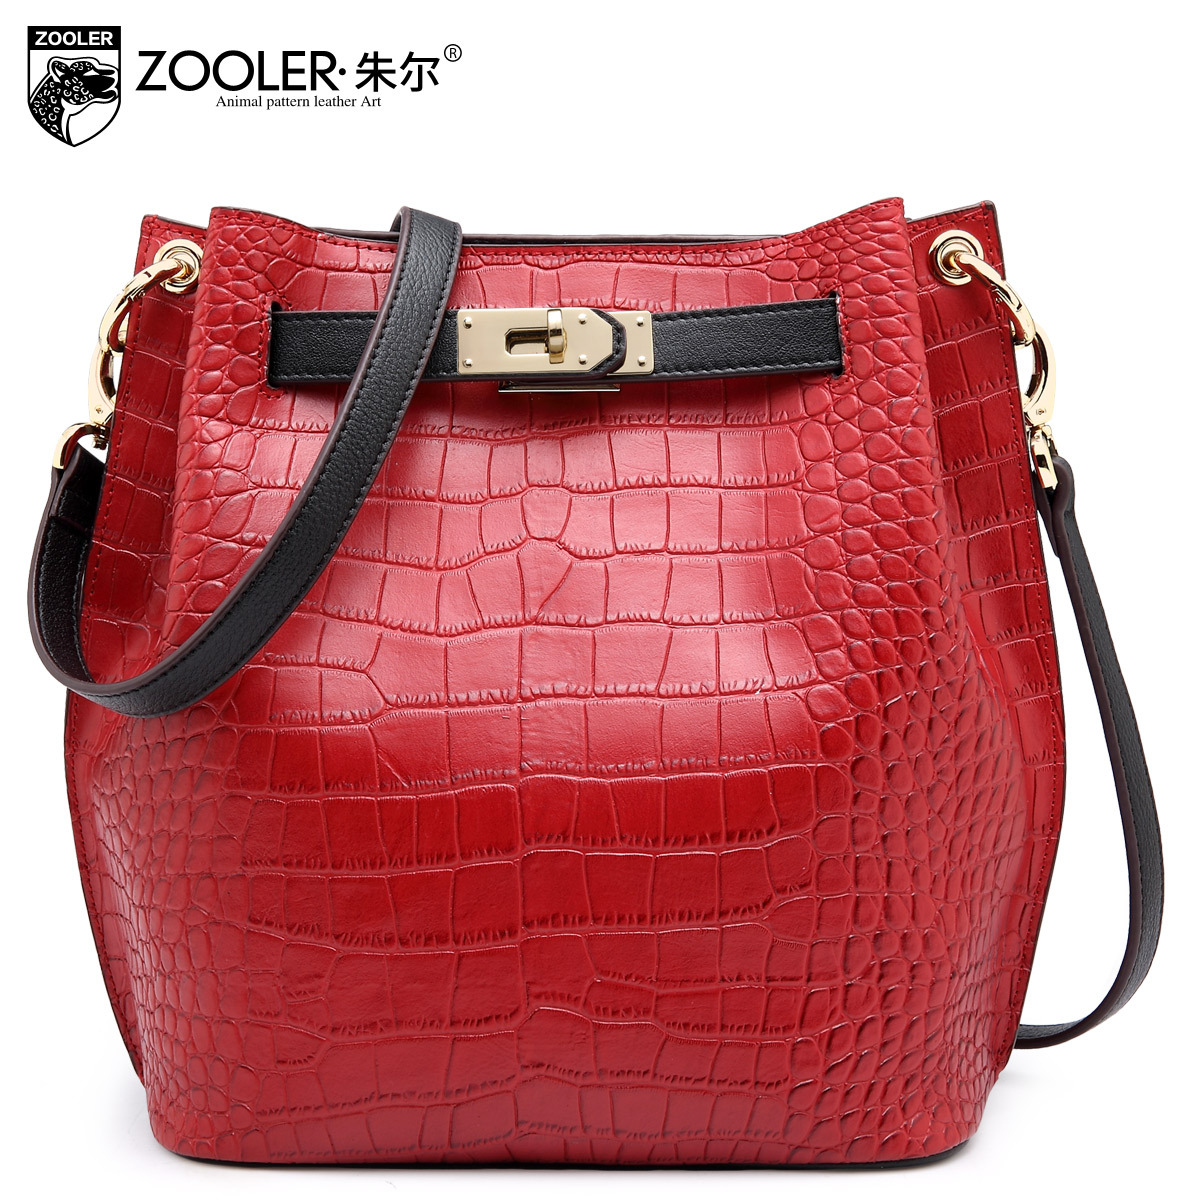 ZOOLER Brand Women Genuine Leather Bucket Bags 2017 New Fashion Ladies Shoulder Bag Real Leather Crocodile Pattern Crossbody Bag unicalling fashion brand split leather crocodile women bag retro top grade bucket bag chain mini crossbody bags for women